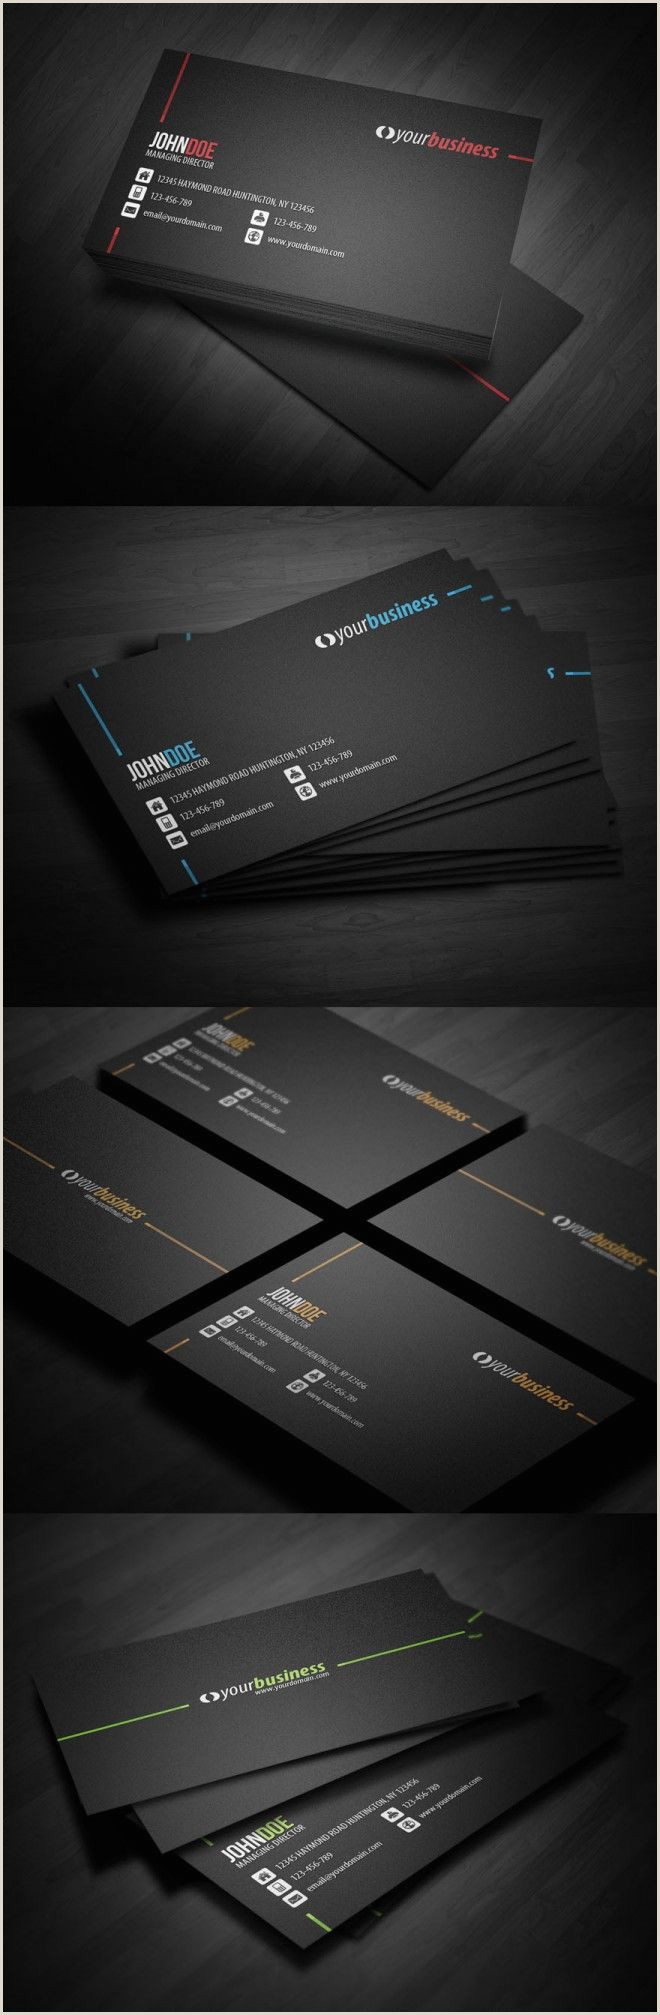 Best Company For Unique Business Cards 50 Creative Corporate Business Card Design Examples Design